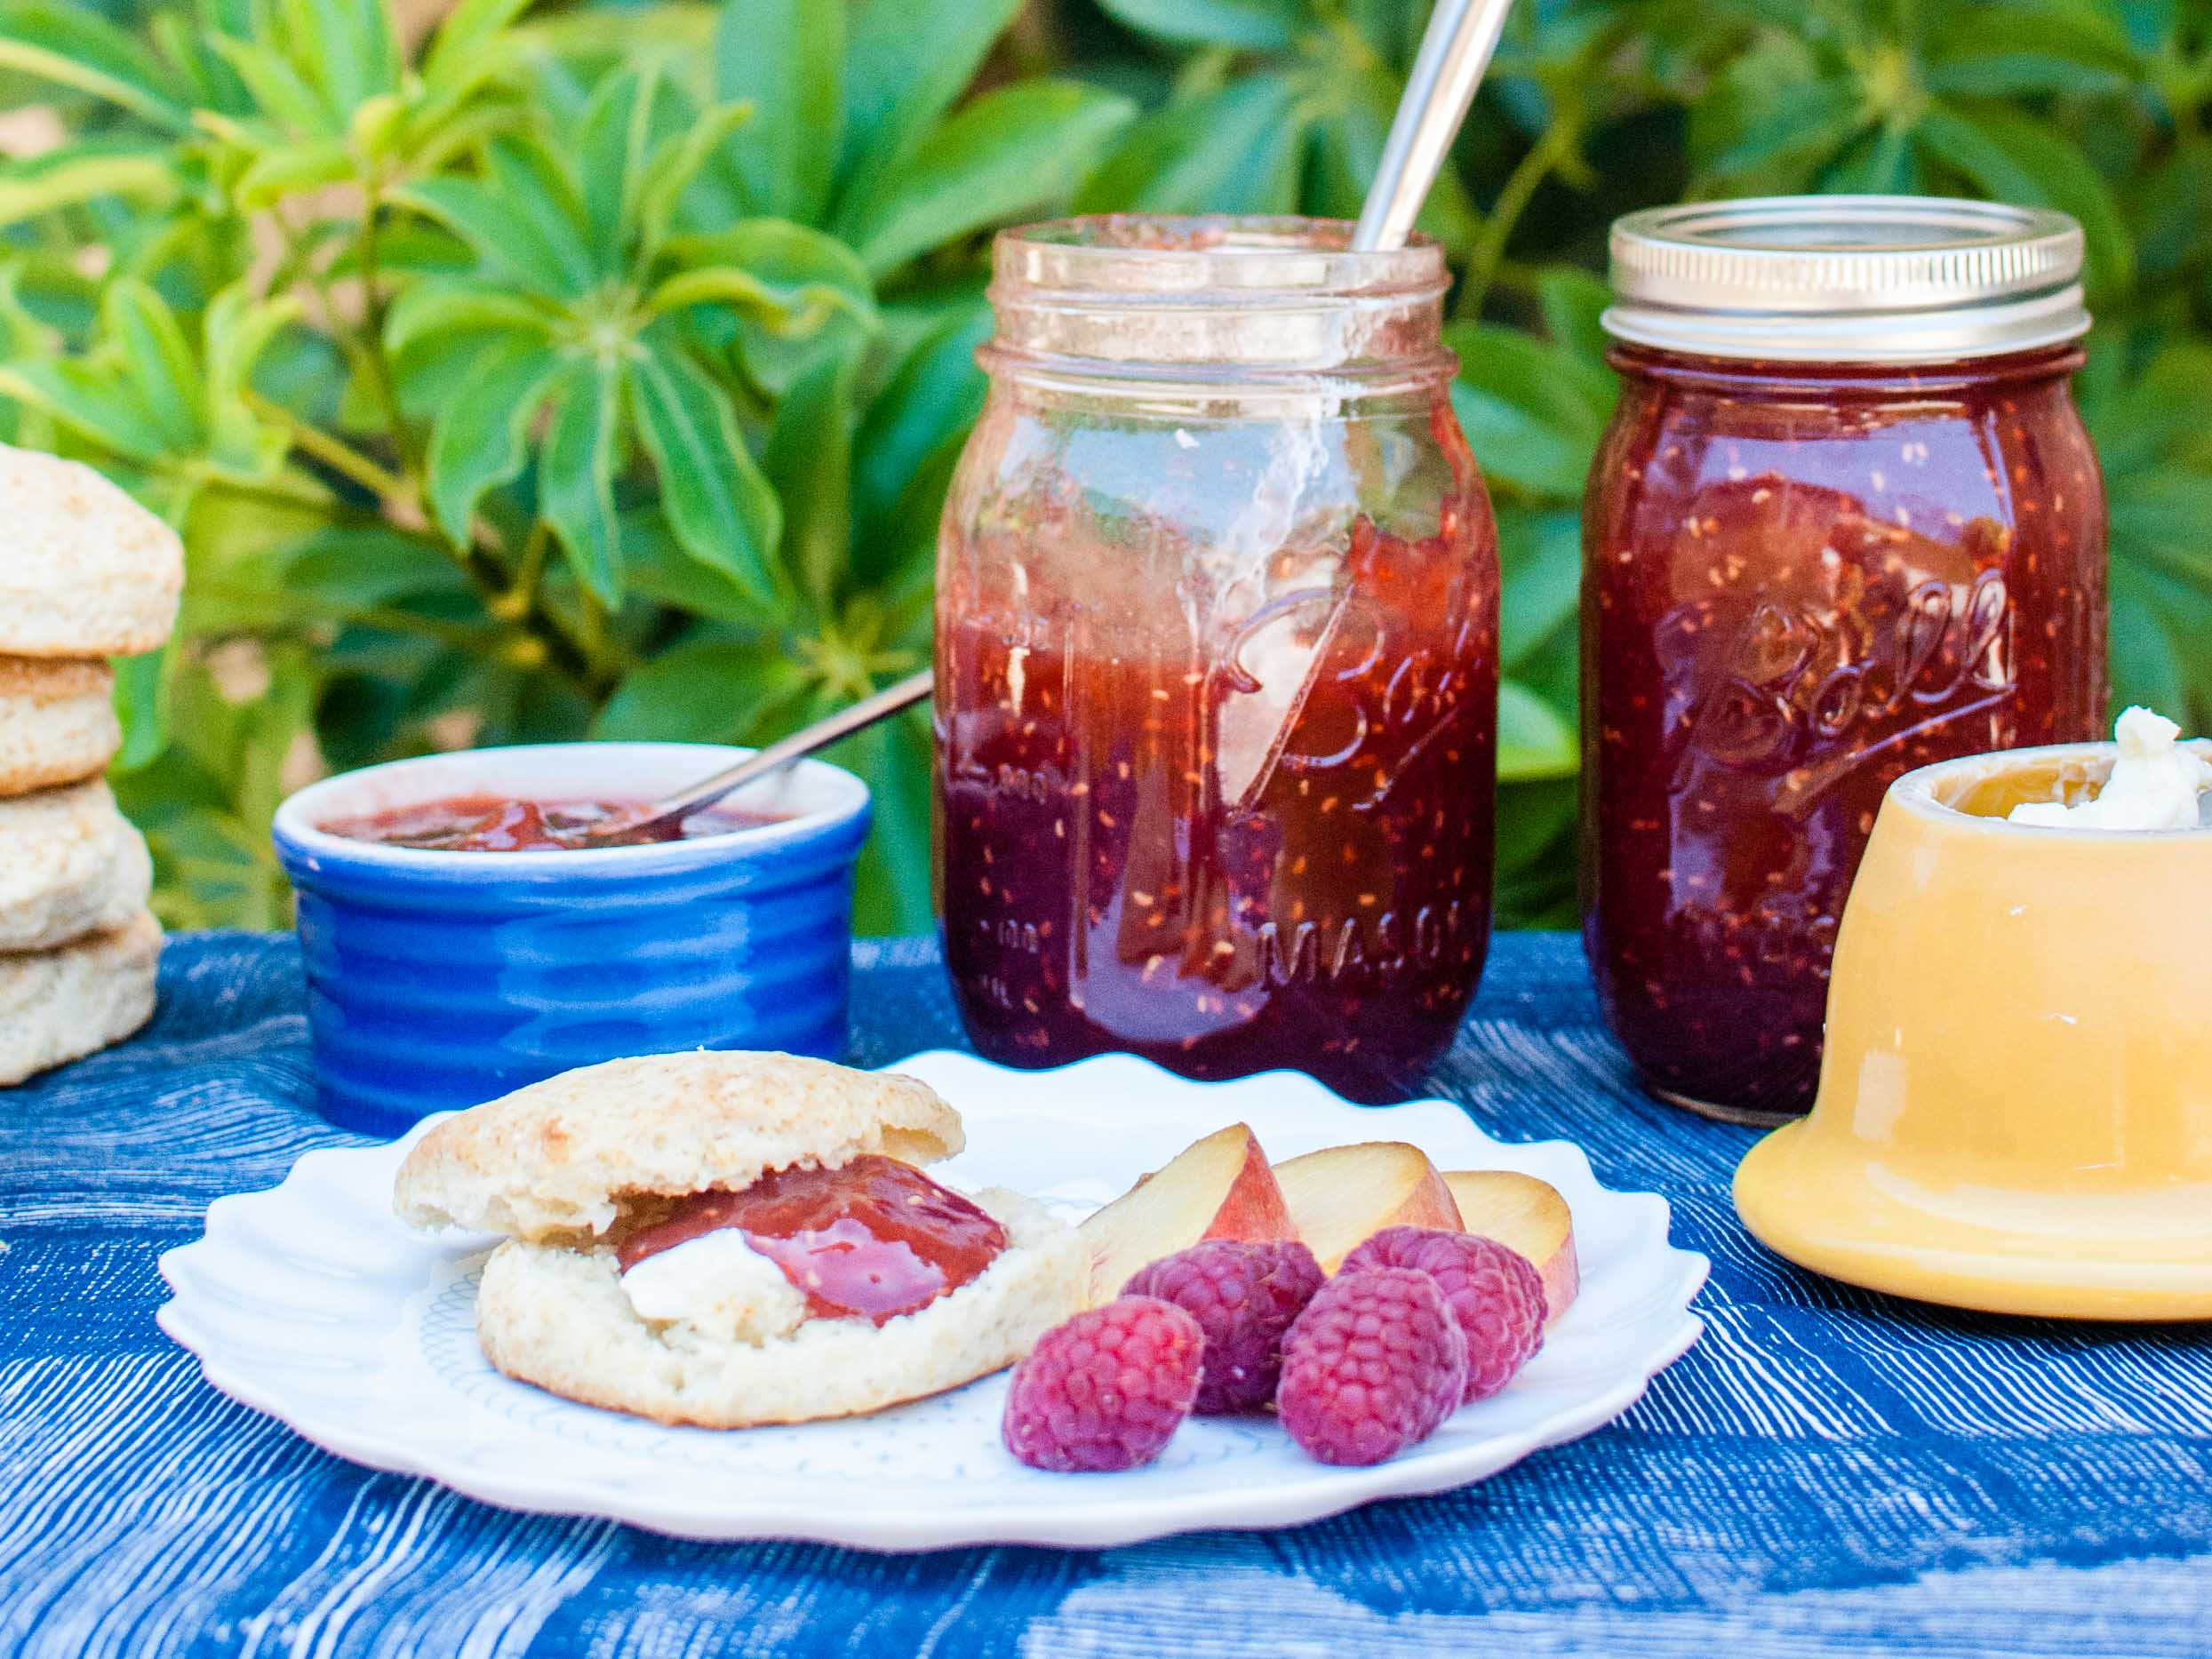 Jam and Biscuits 2-0397-3.jpg